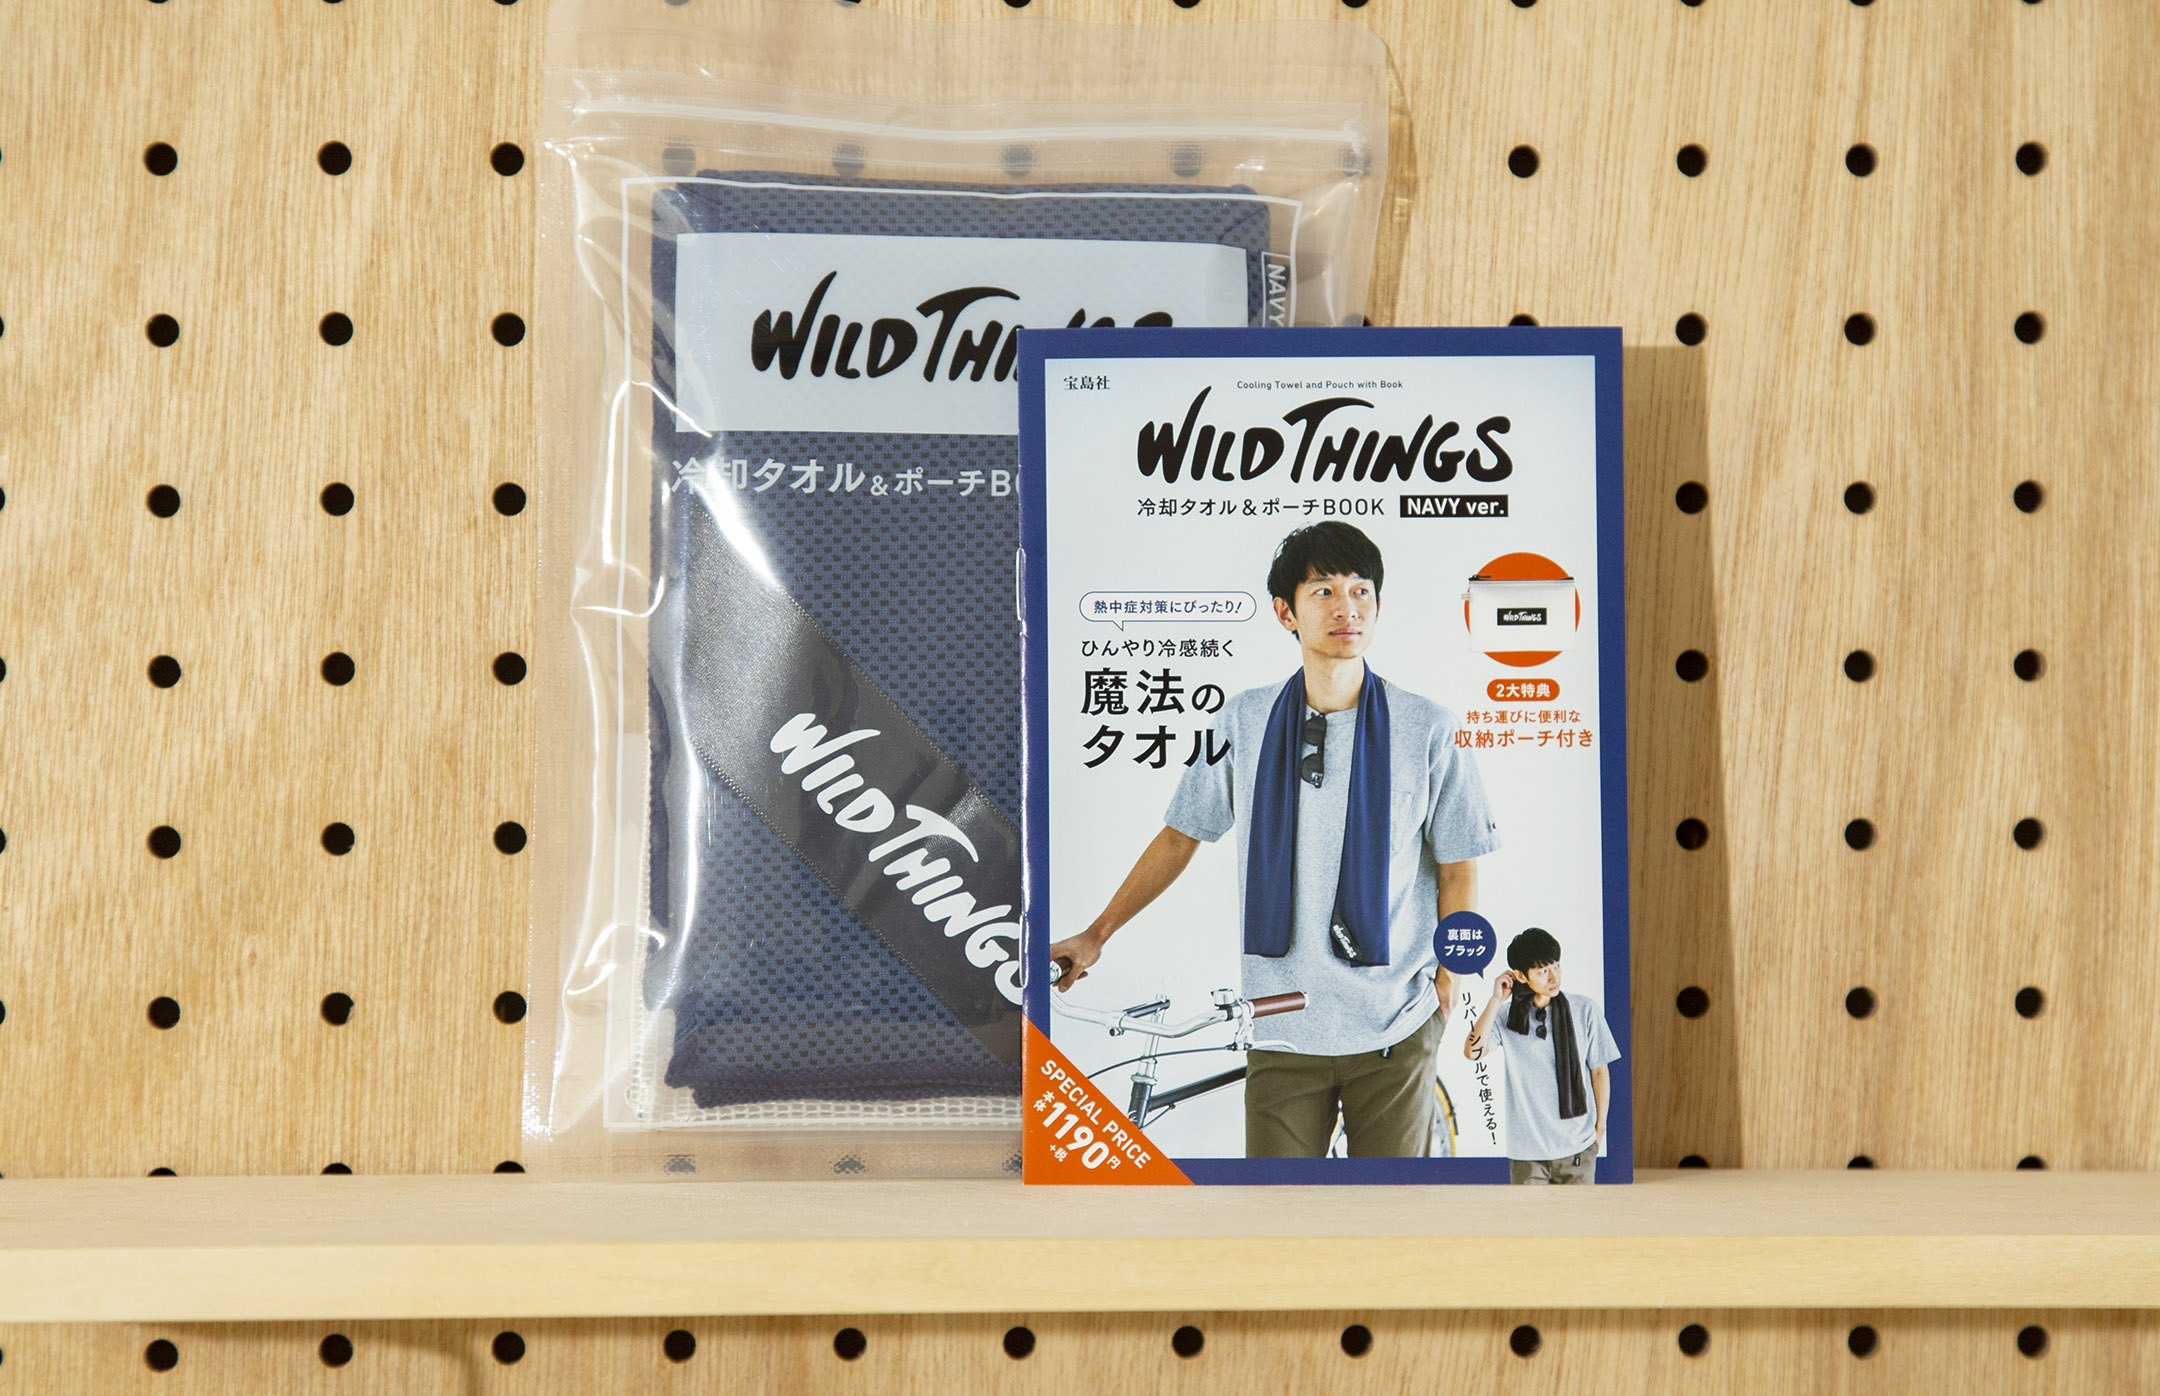 WILD THINGS 冷却タオル&ポーチBOOK